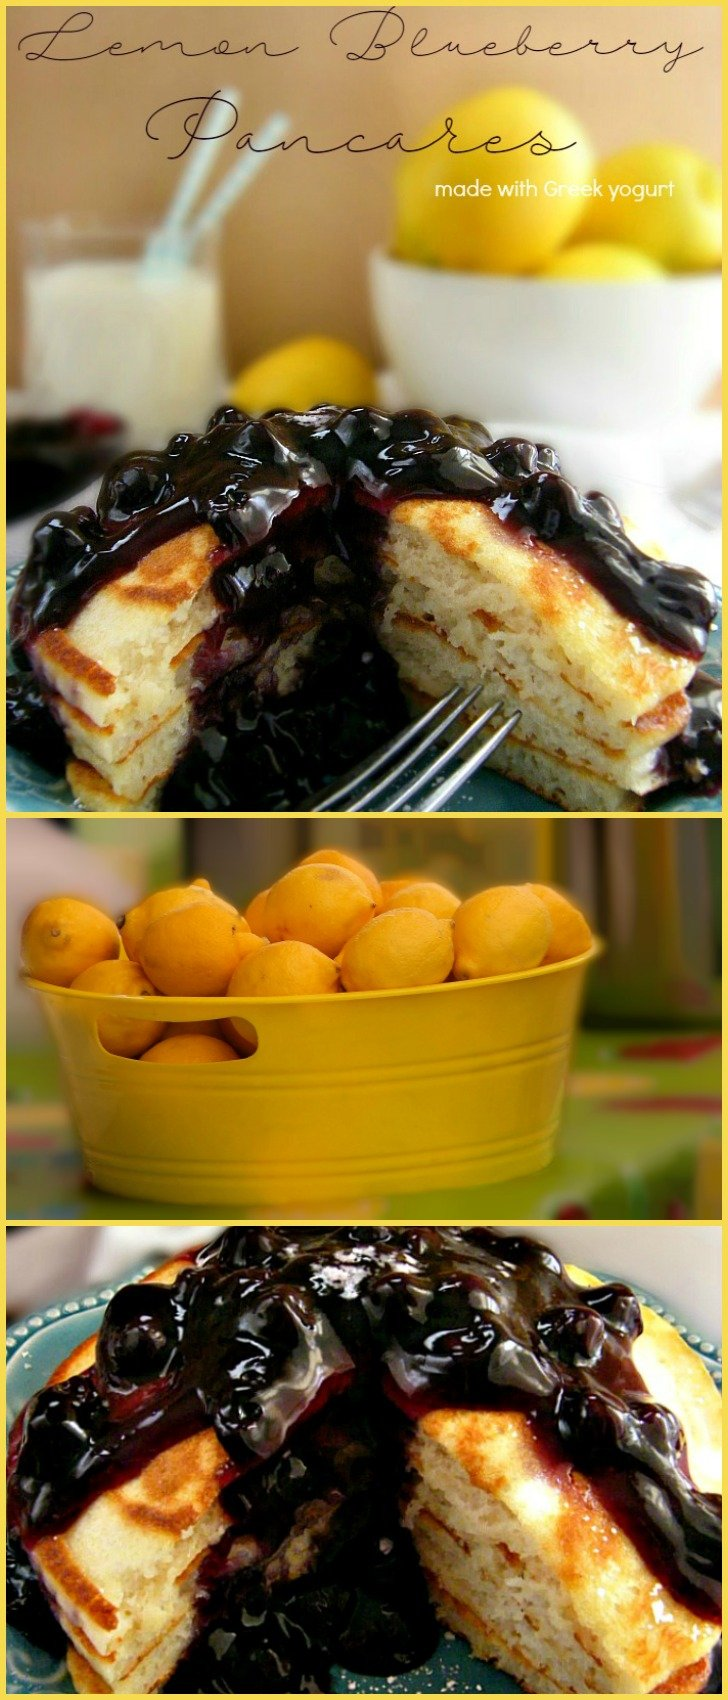 Lemon Blueberry Pancakes made with lemon Greek yogart topped with blueberry pie filling. sewlicioushomedecor.com